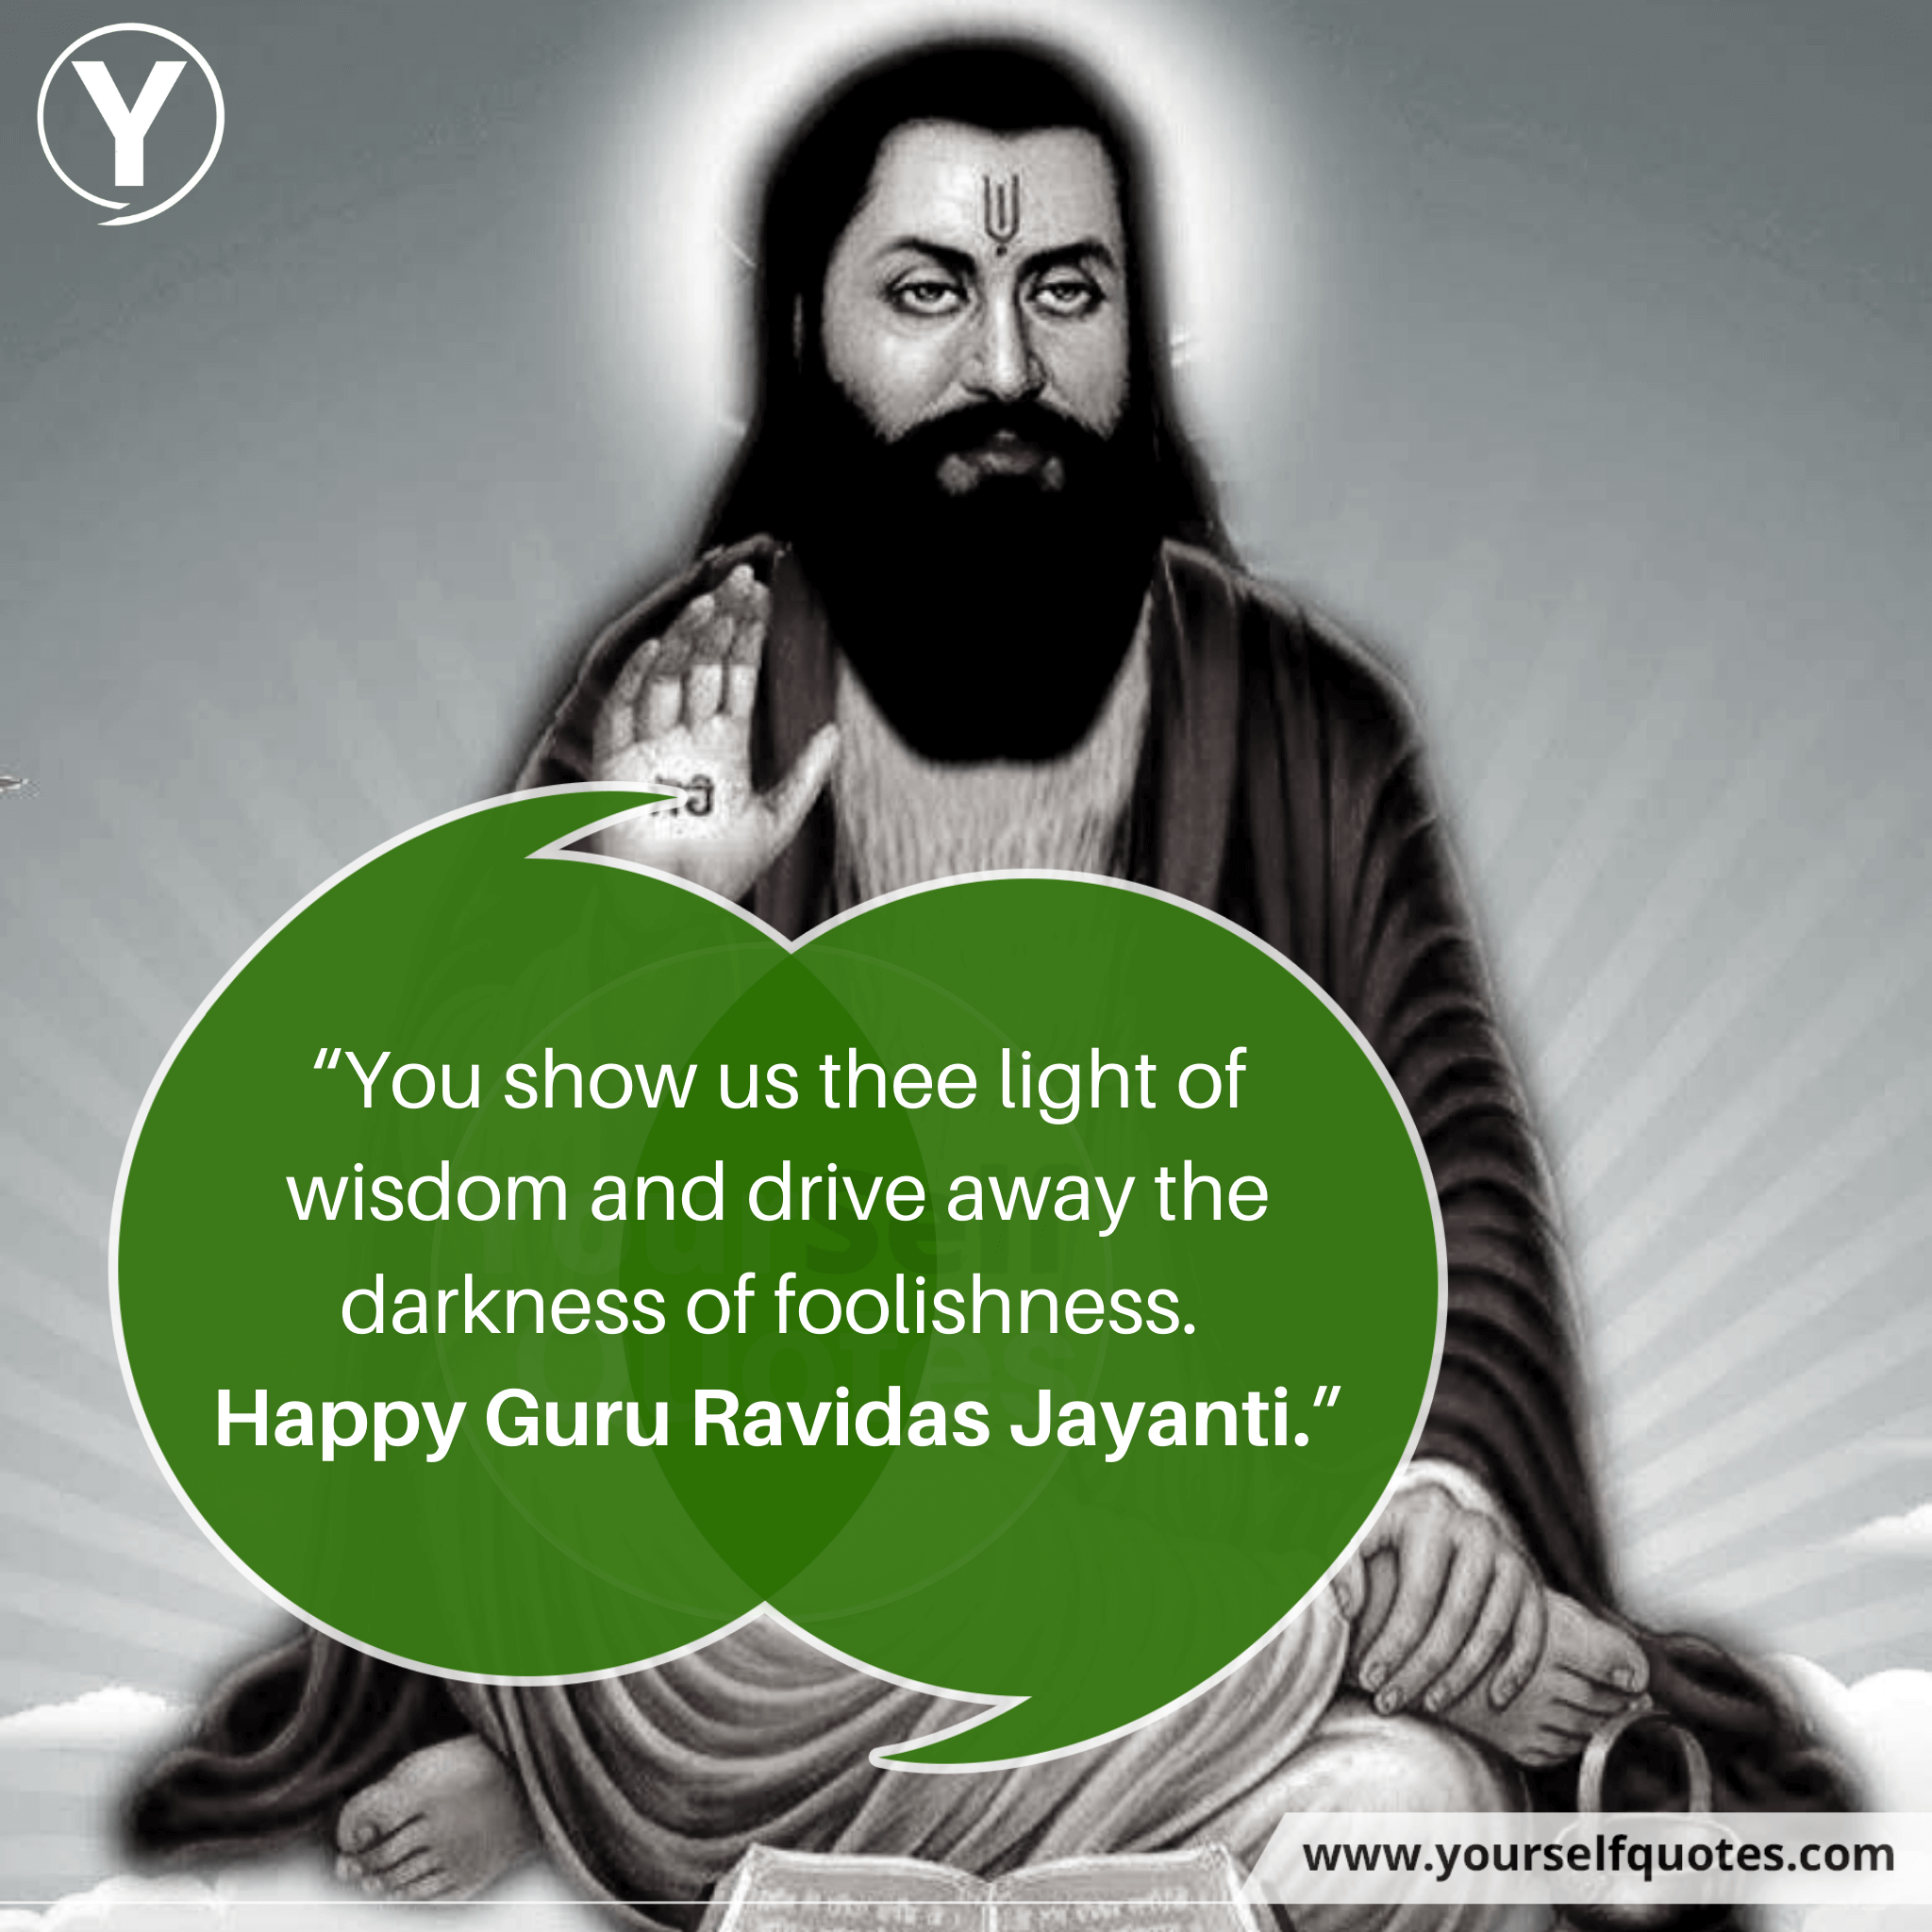 Happy Guru Ravidas Jayanti Quotes